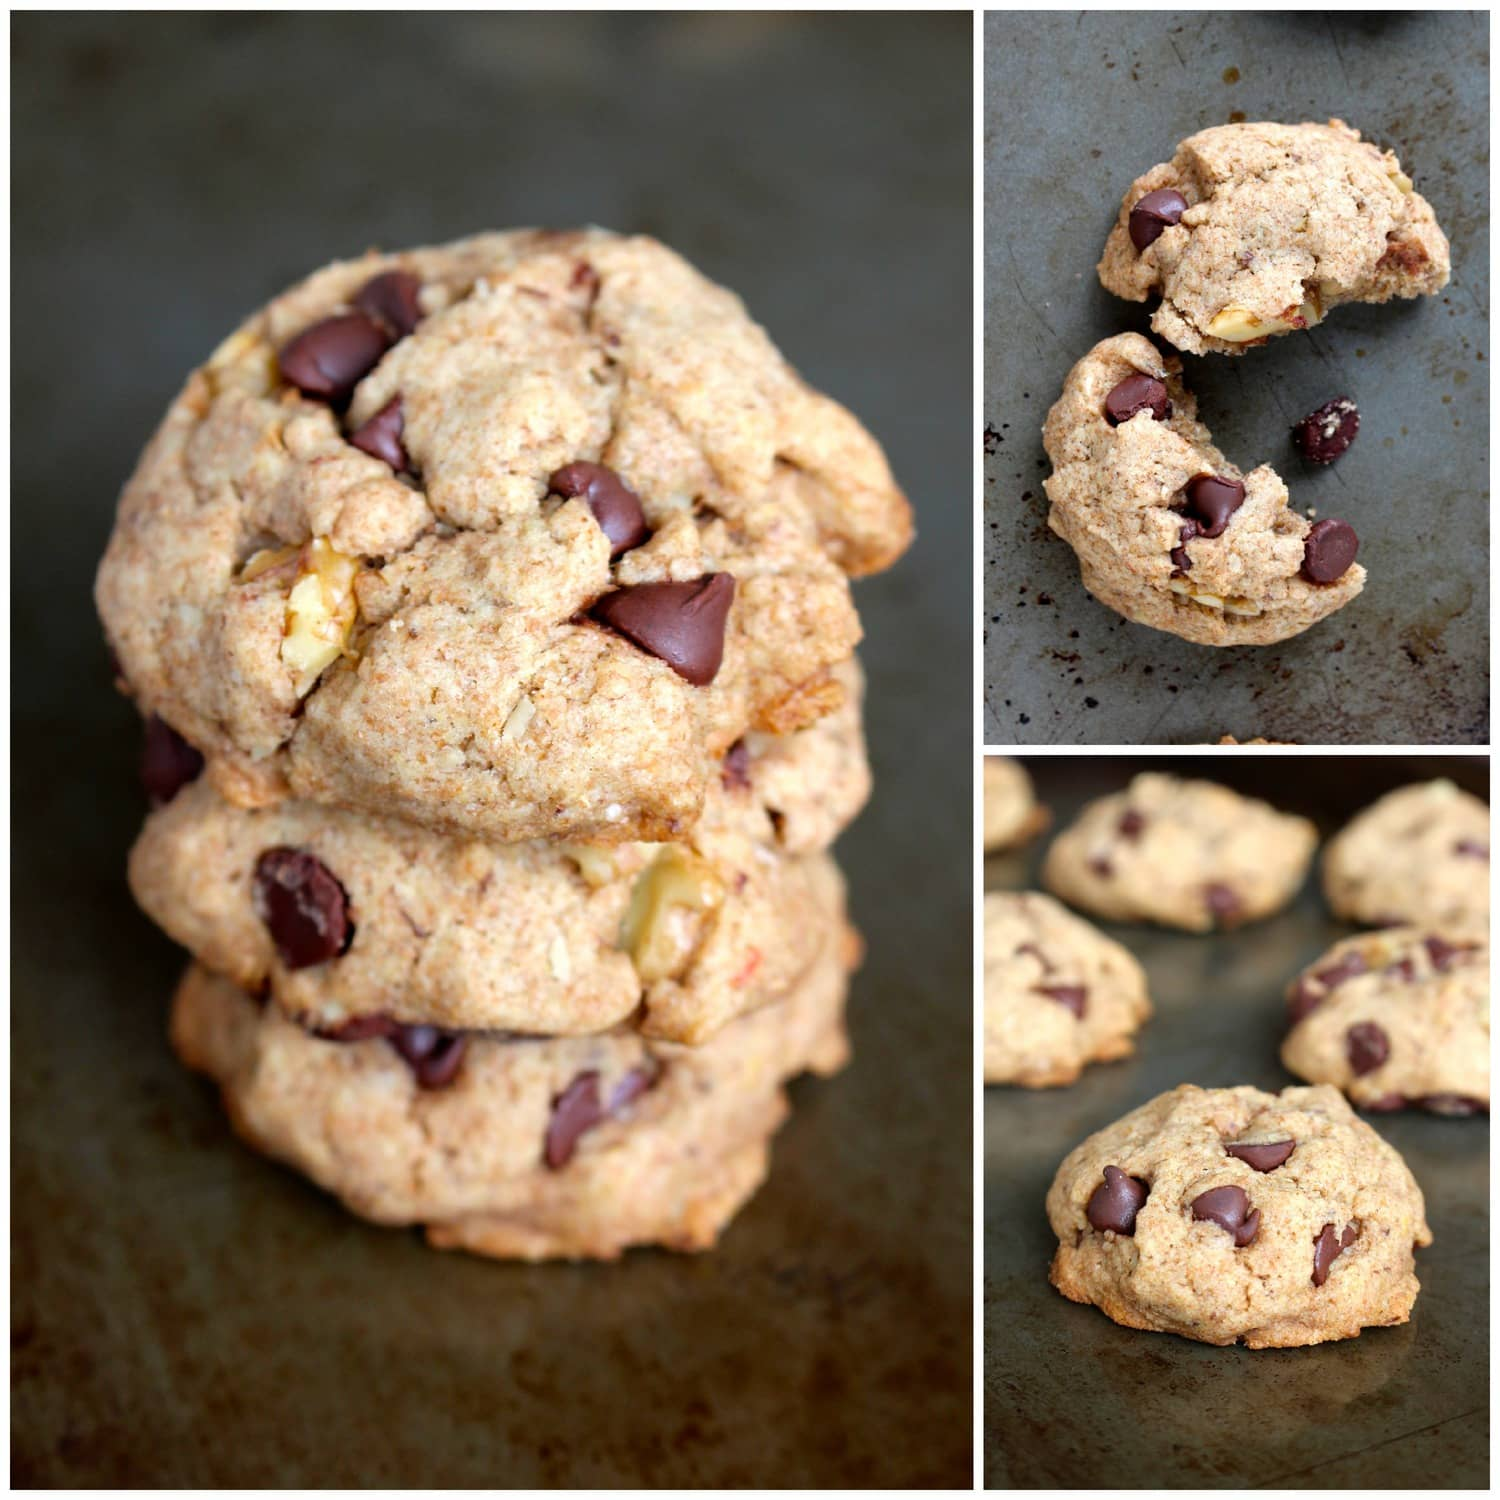 Maple Syrup Whole Wheat Vegan Chocolate Chip Cookies